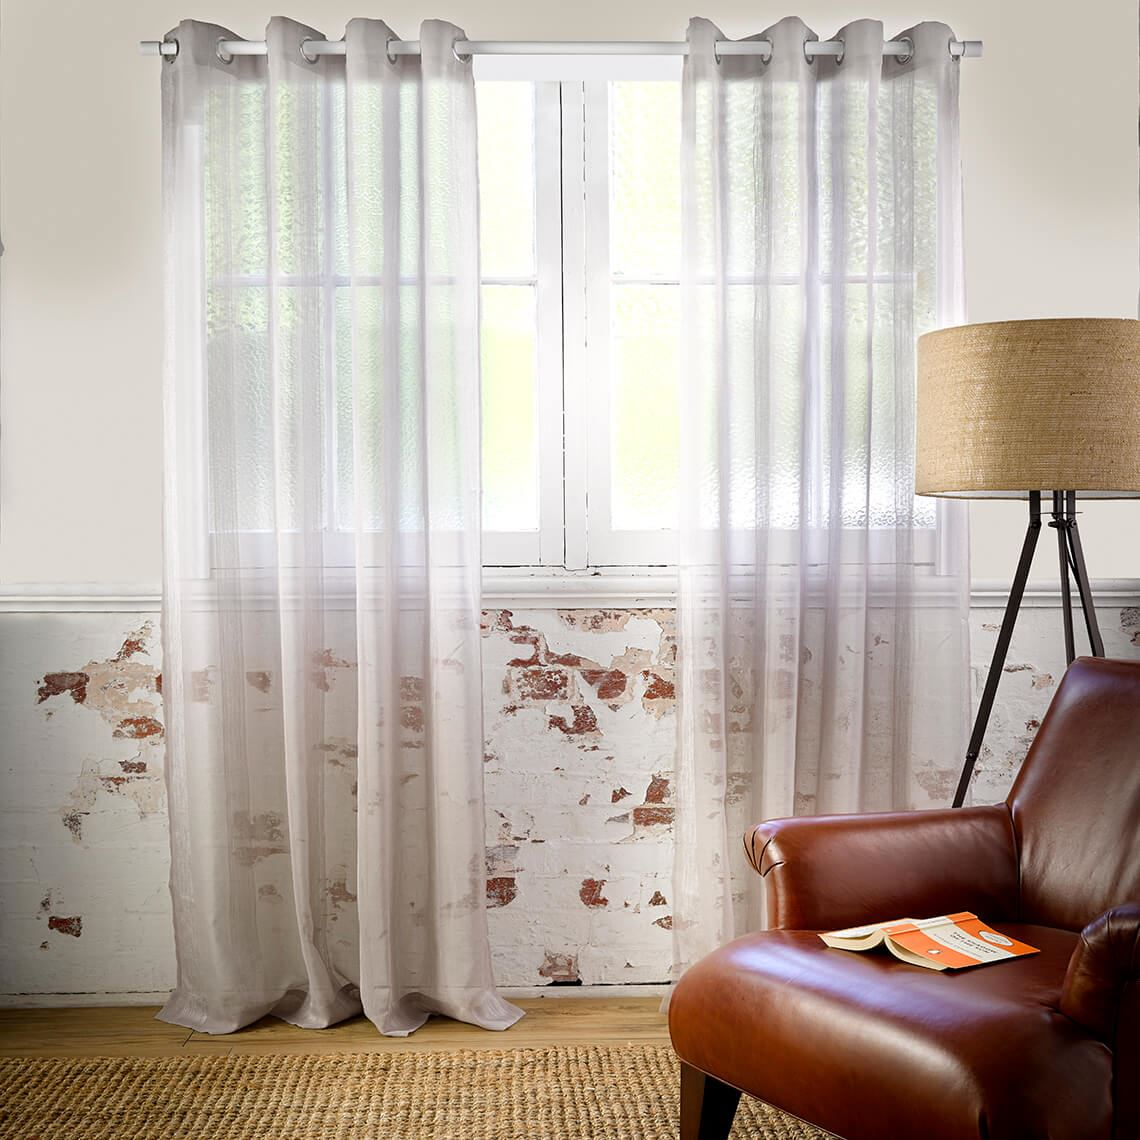 Houston Sheer Eyelet Curtain Size W 180cm x D 1cm x H 250cm in Dove Grey 100% Polyester/Stainless Steel Freedom by Freedom, a Curtains for sale on Style Sourcebook